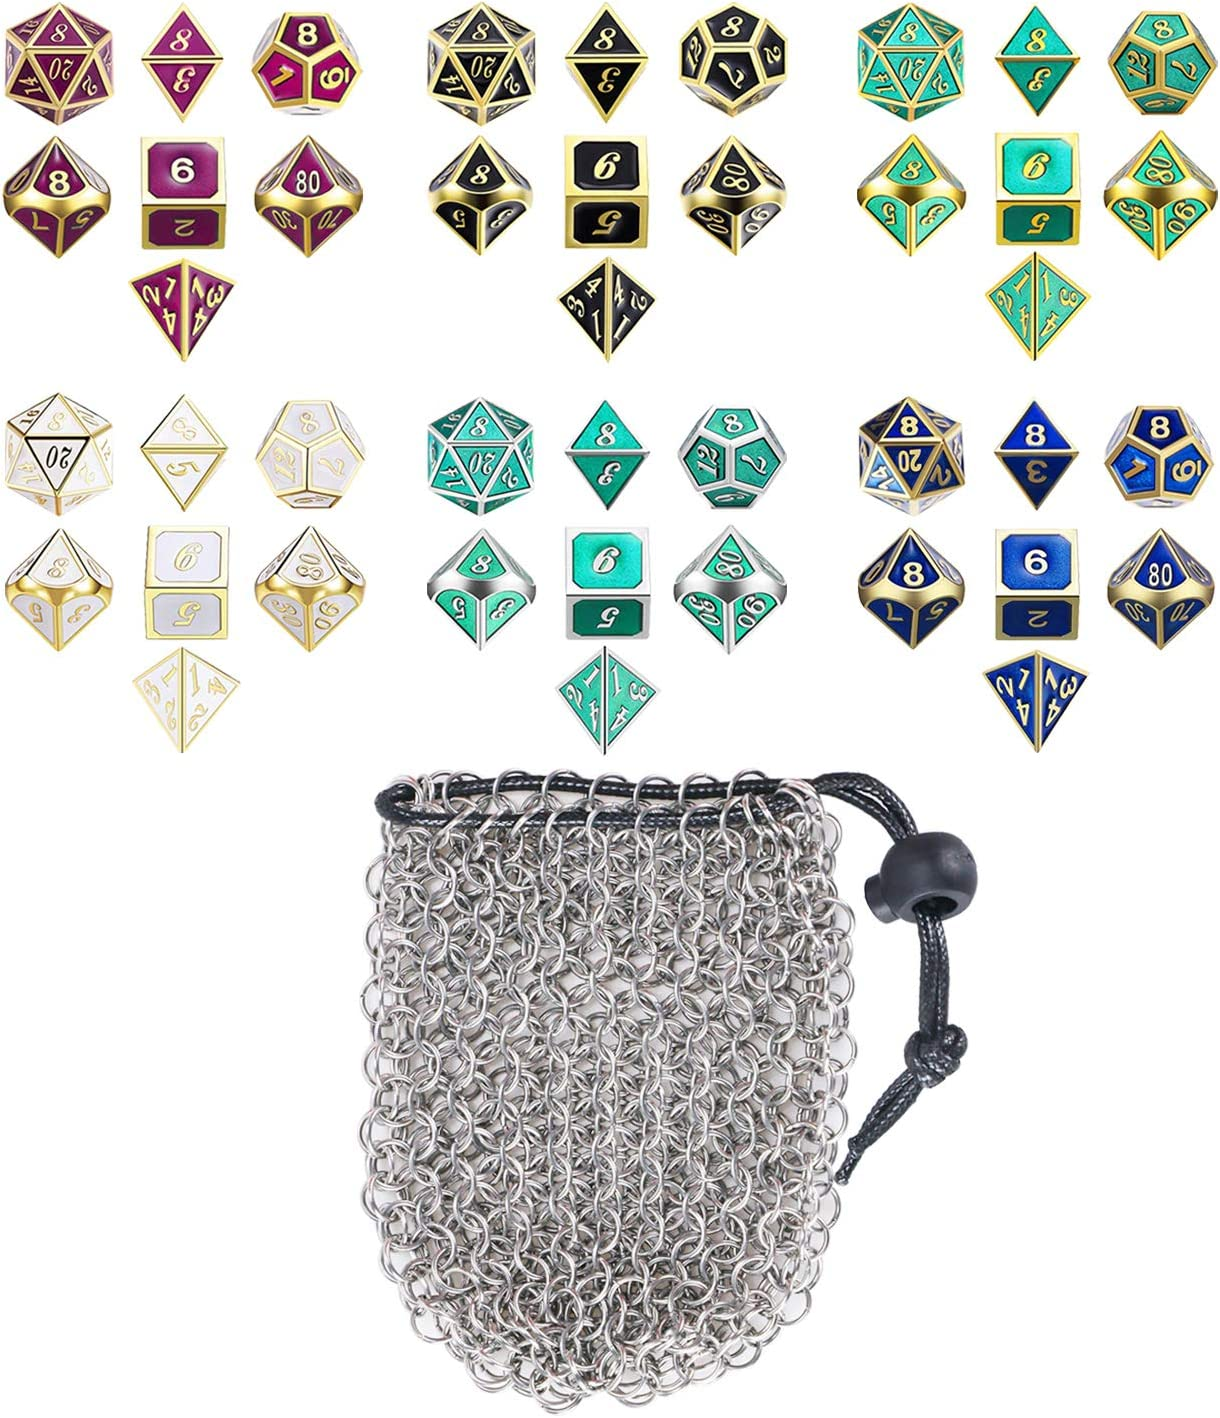 Hold 42 DND Dice, Gold Chainmail D/&D Dice Bag for Dungeons and Dragons Drawstring Stainless Steel Dice Bag Dice Set by YOUSHARES